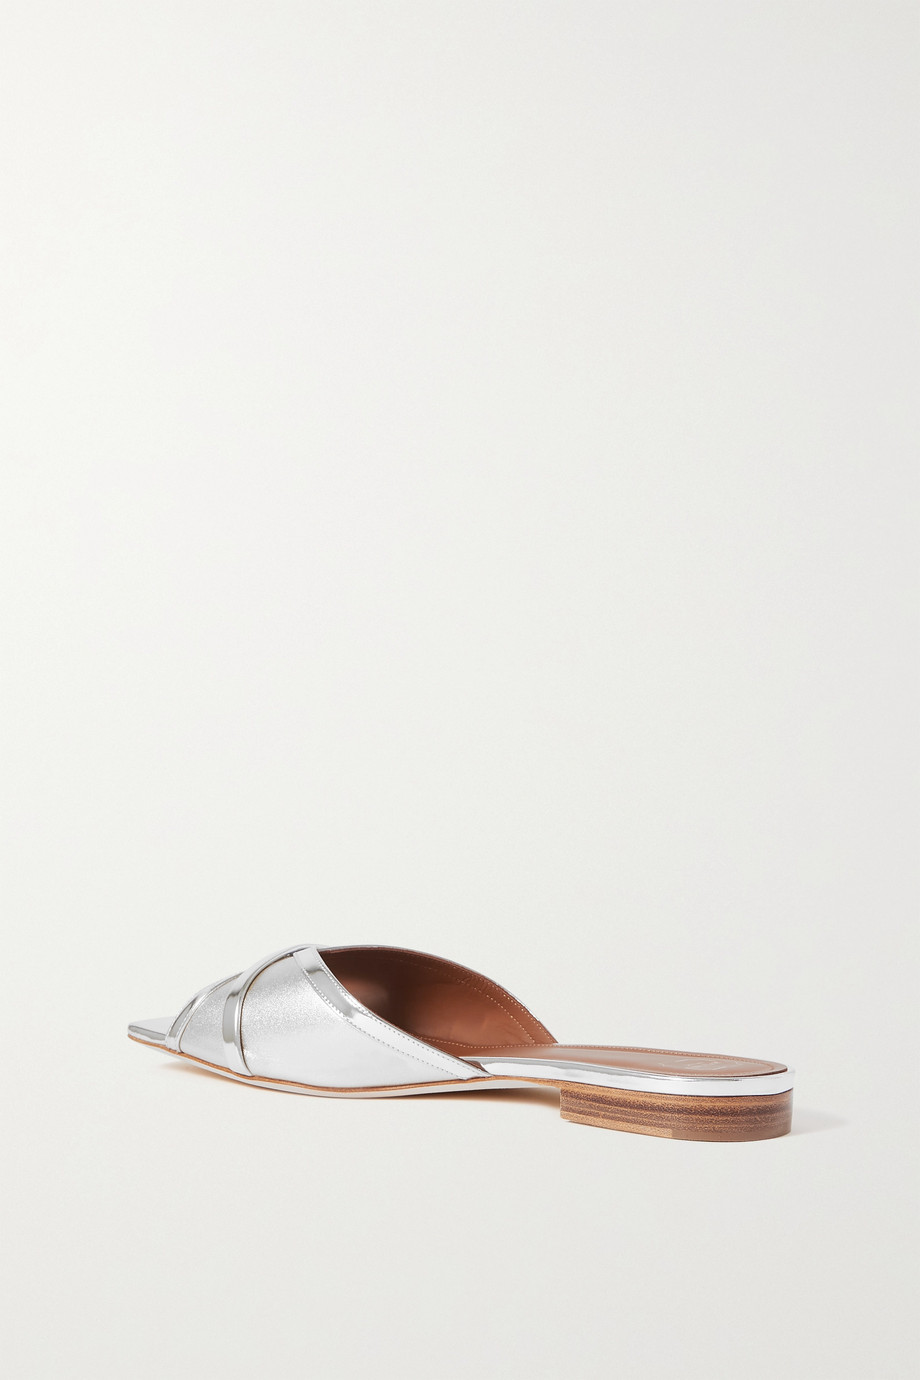 MALONE SOULIERS Perla 10 two-tone metallic leather slides